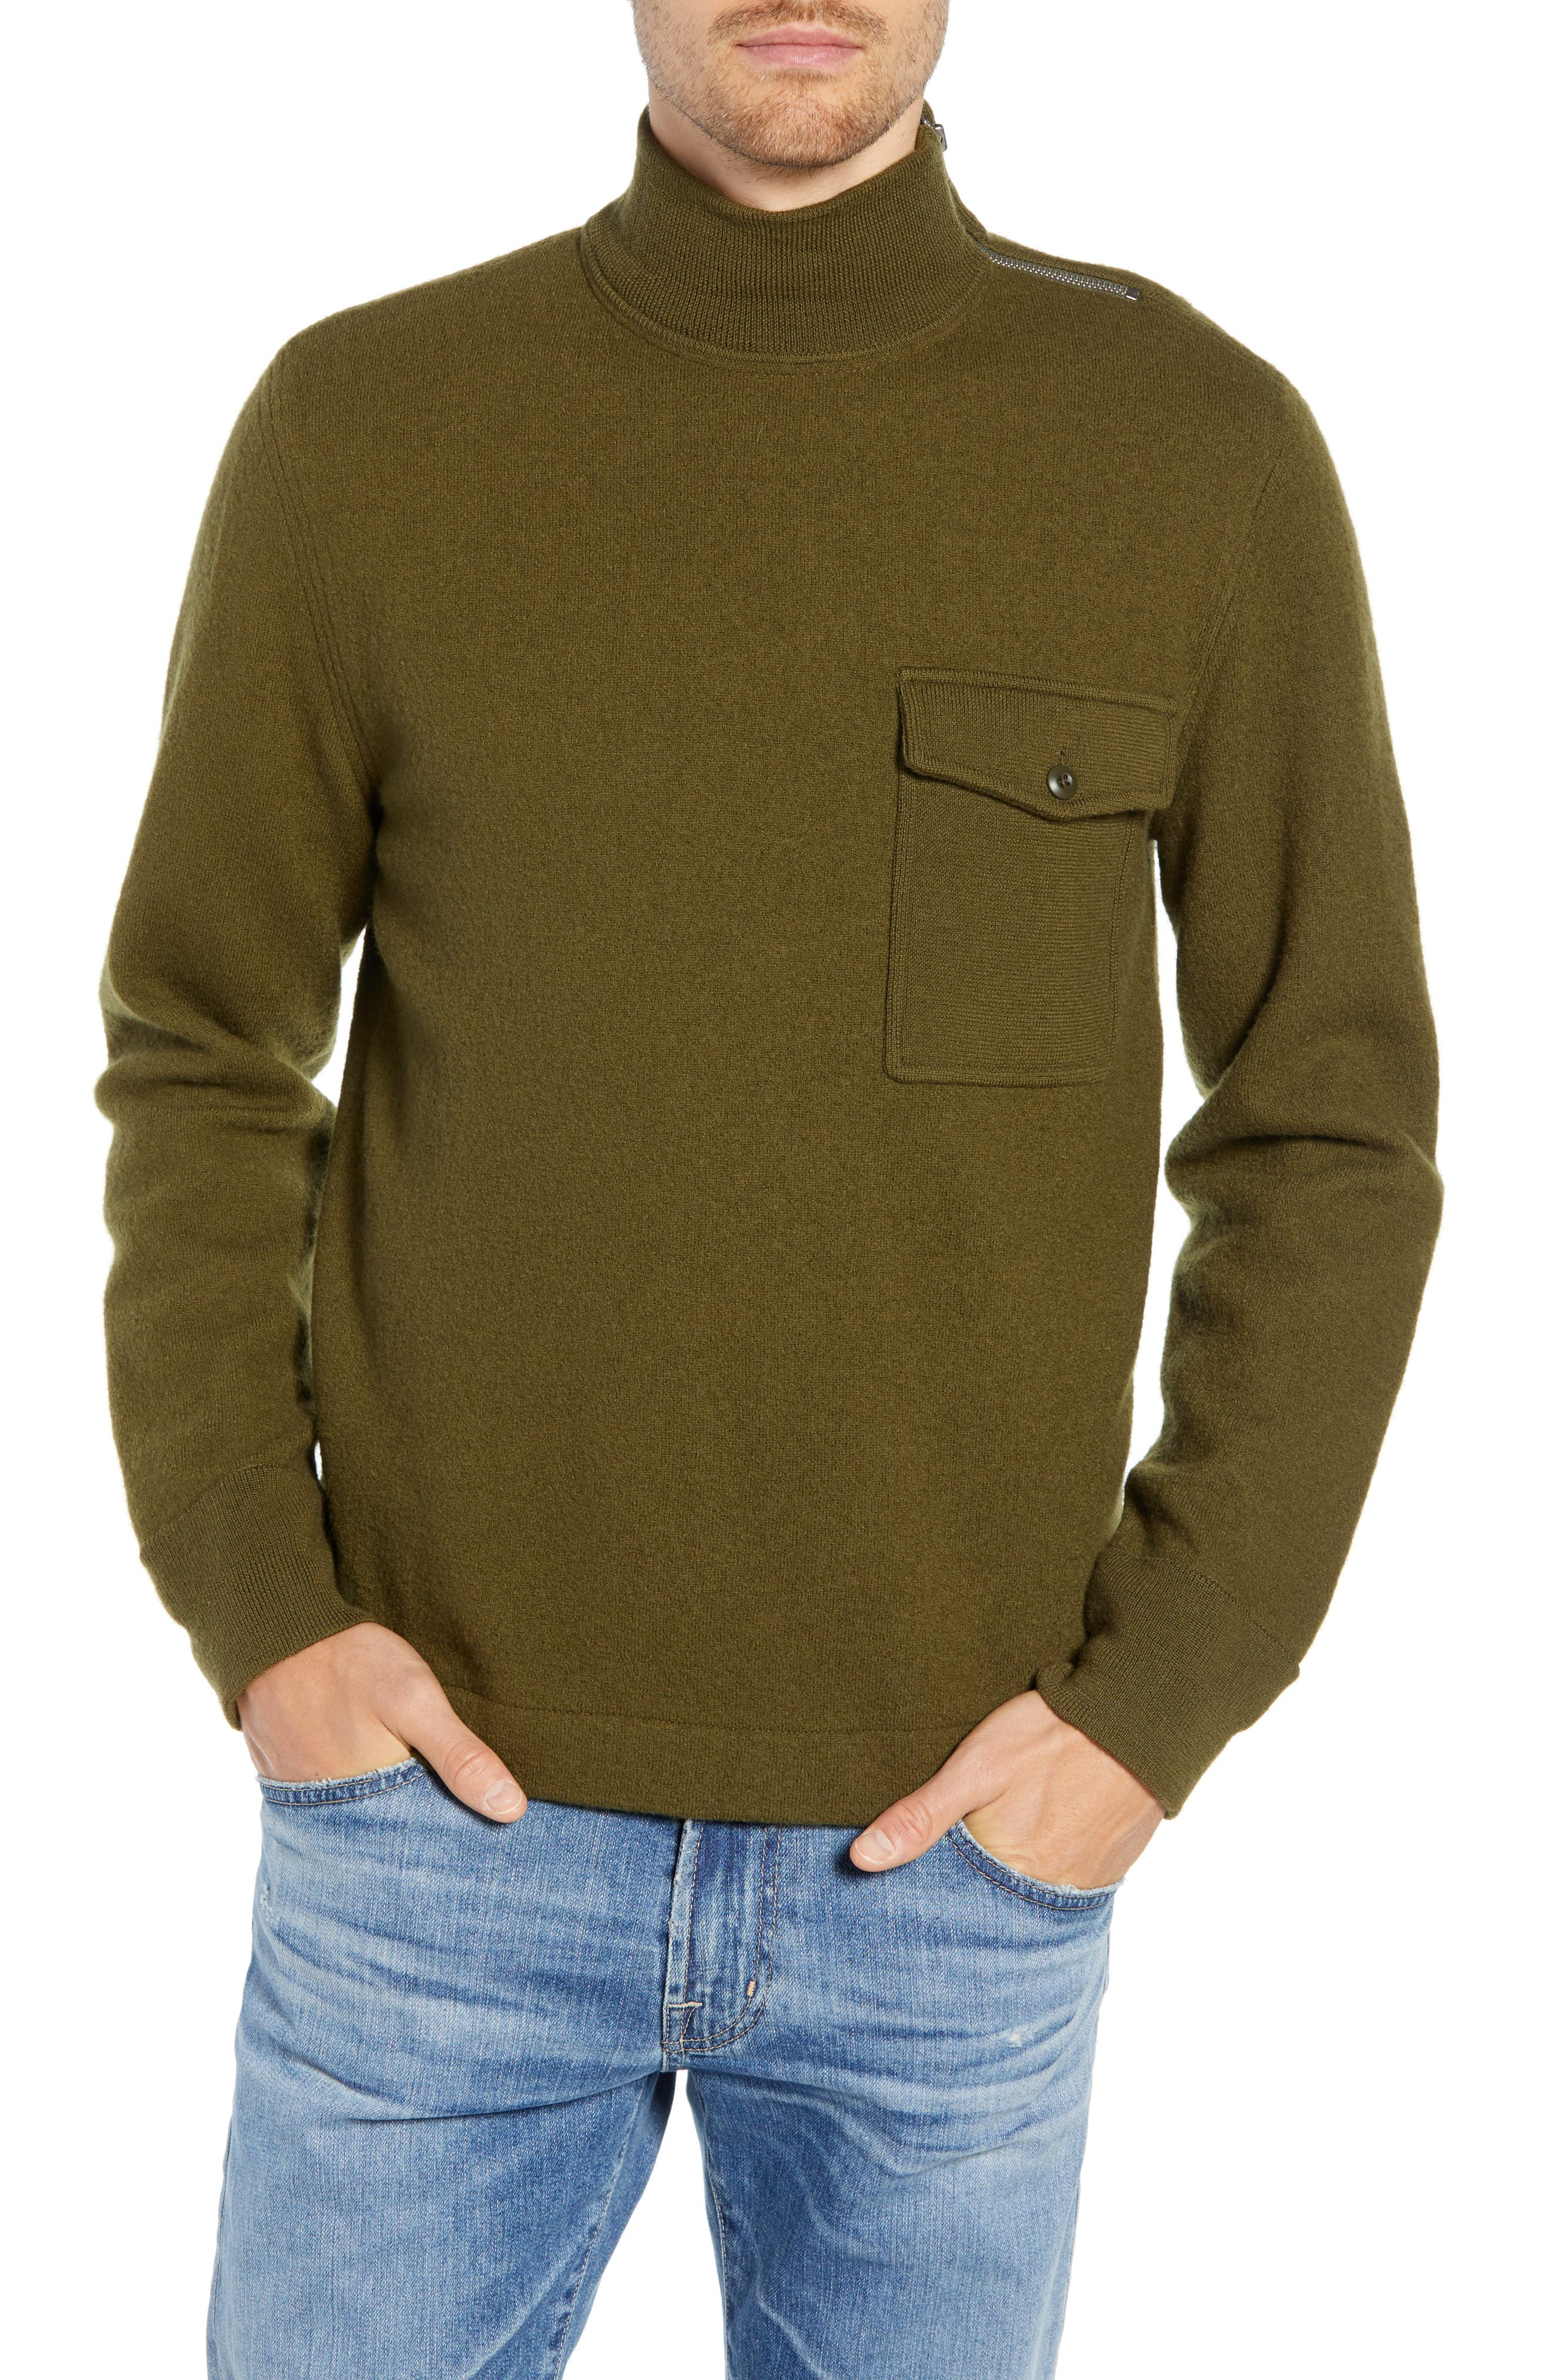 Wallace & Barnes Felted Merino Wool Mock Neck Pullover,                             Main thumbnail 1, color,                             ORCHARD GREEN